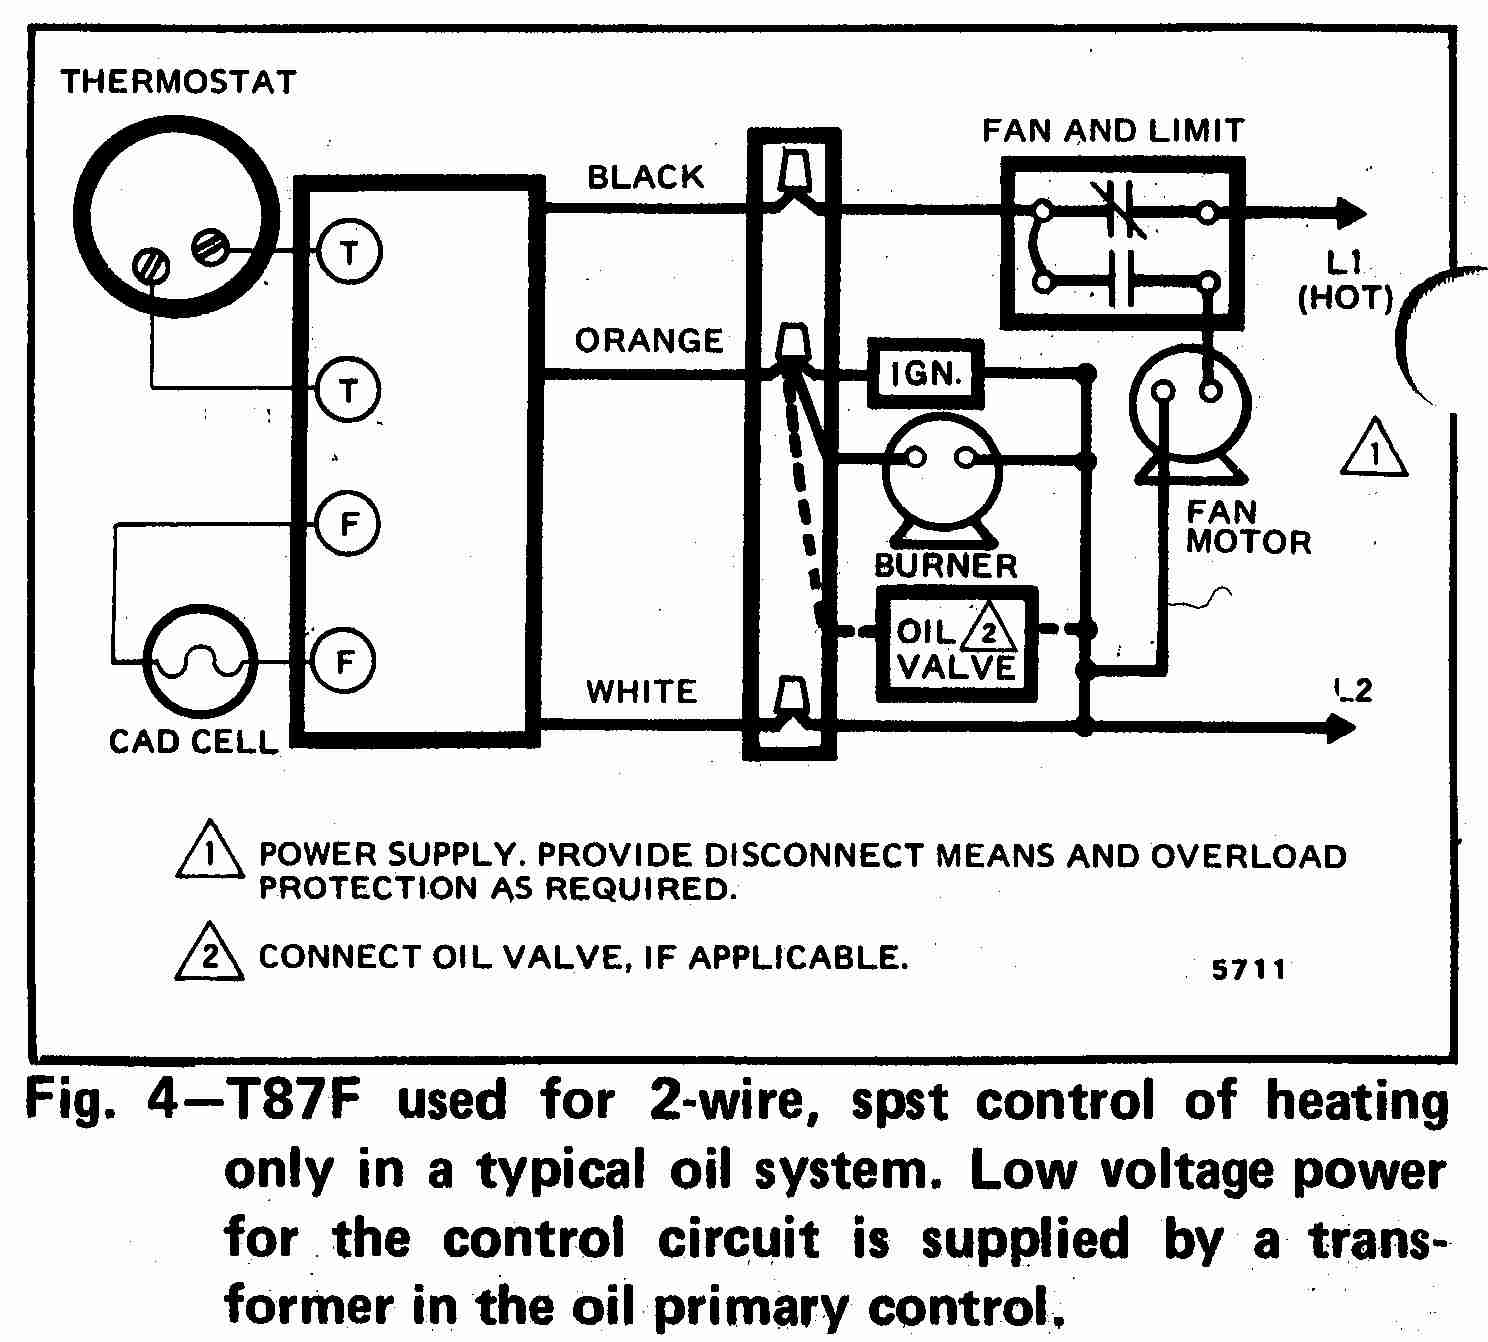 TT_T87F_0002_2W_DJF room thermostat wiring diagrams for hvac systems coleman air conditioner wiring diagram at edmiracle.co